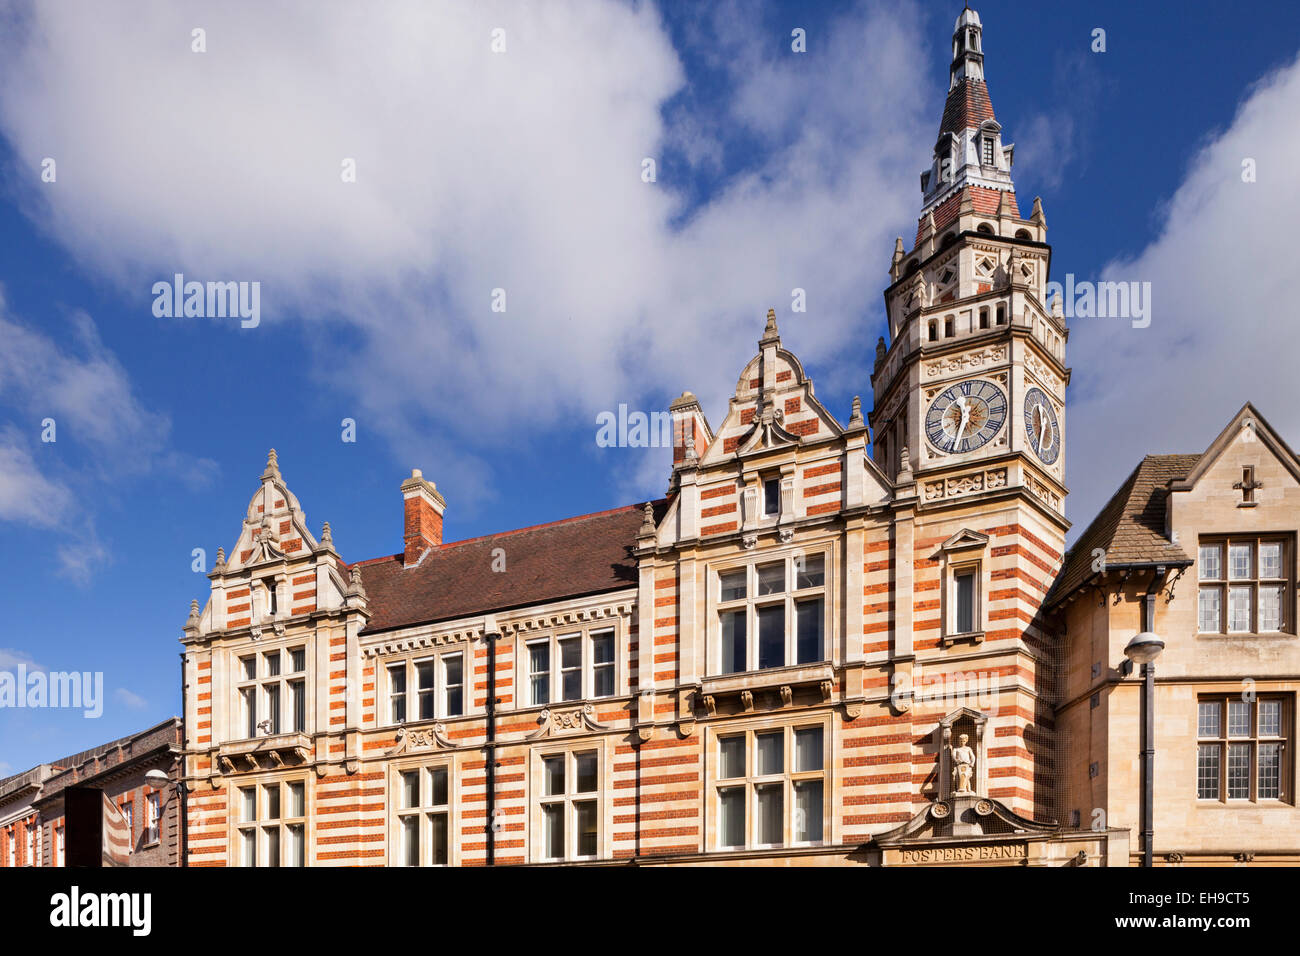 Lloyds Bank building, originally Fosters' Bank, in Sidney Street, Cambridge. The building dates from around - Stock Image